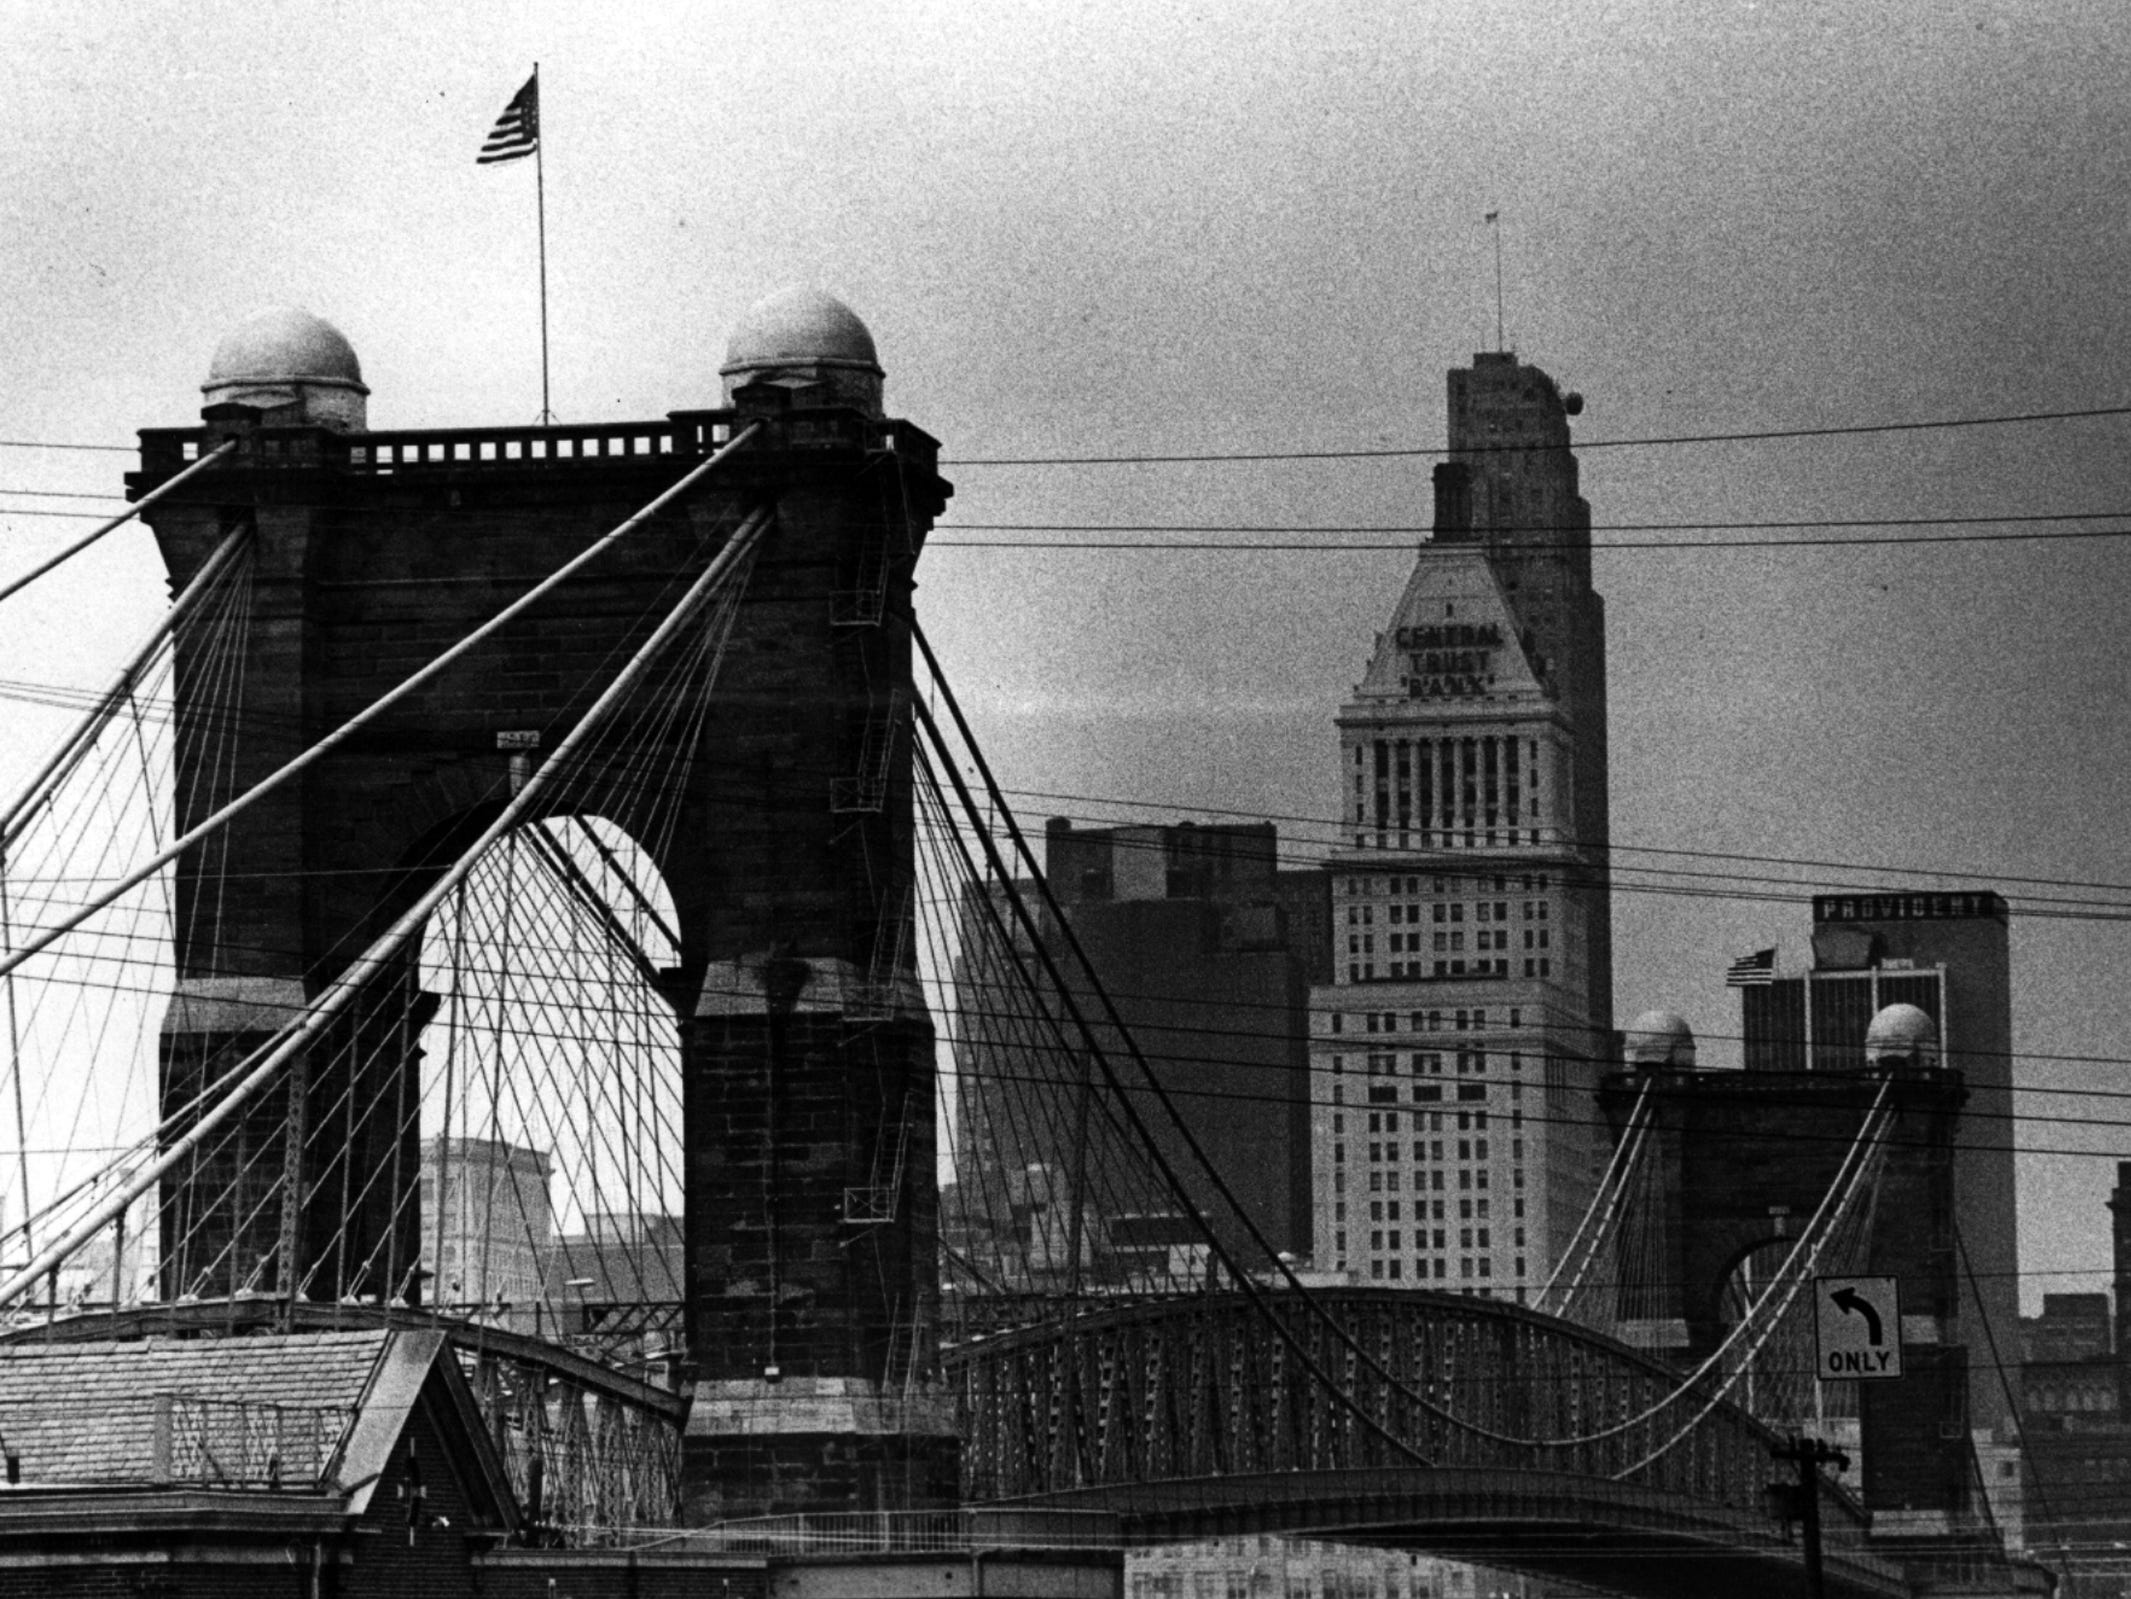 DECEMBER 19, 1977: Stars and stripes and the Bennington flag again fly over the Suspension Bridge after a series of snatchings and the conviction of an Erlanger man for taking the bridge's flags. From the Enquirer archives scanned May 16, 2013